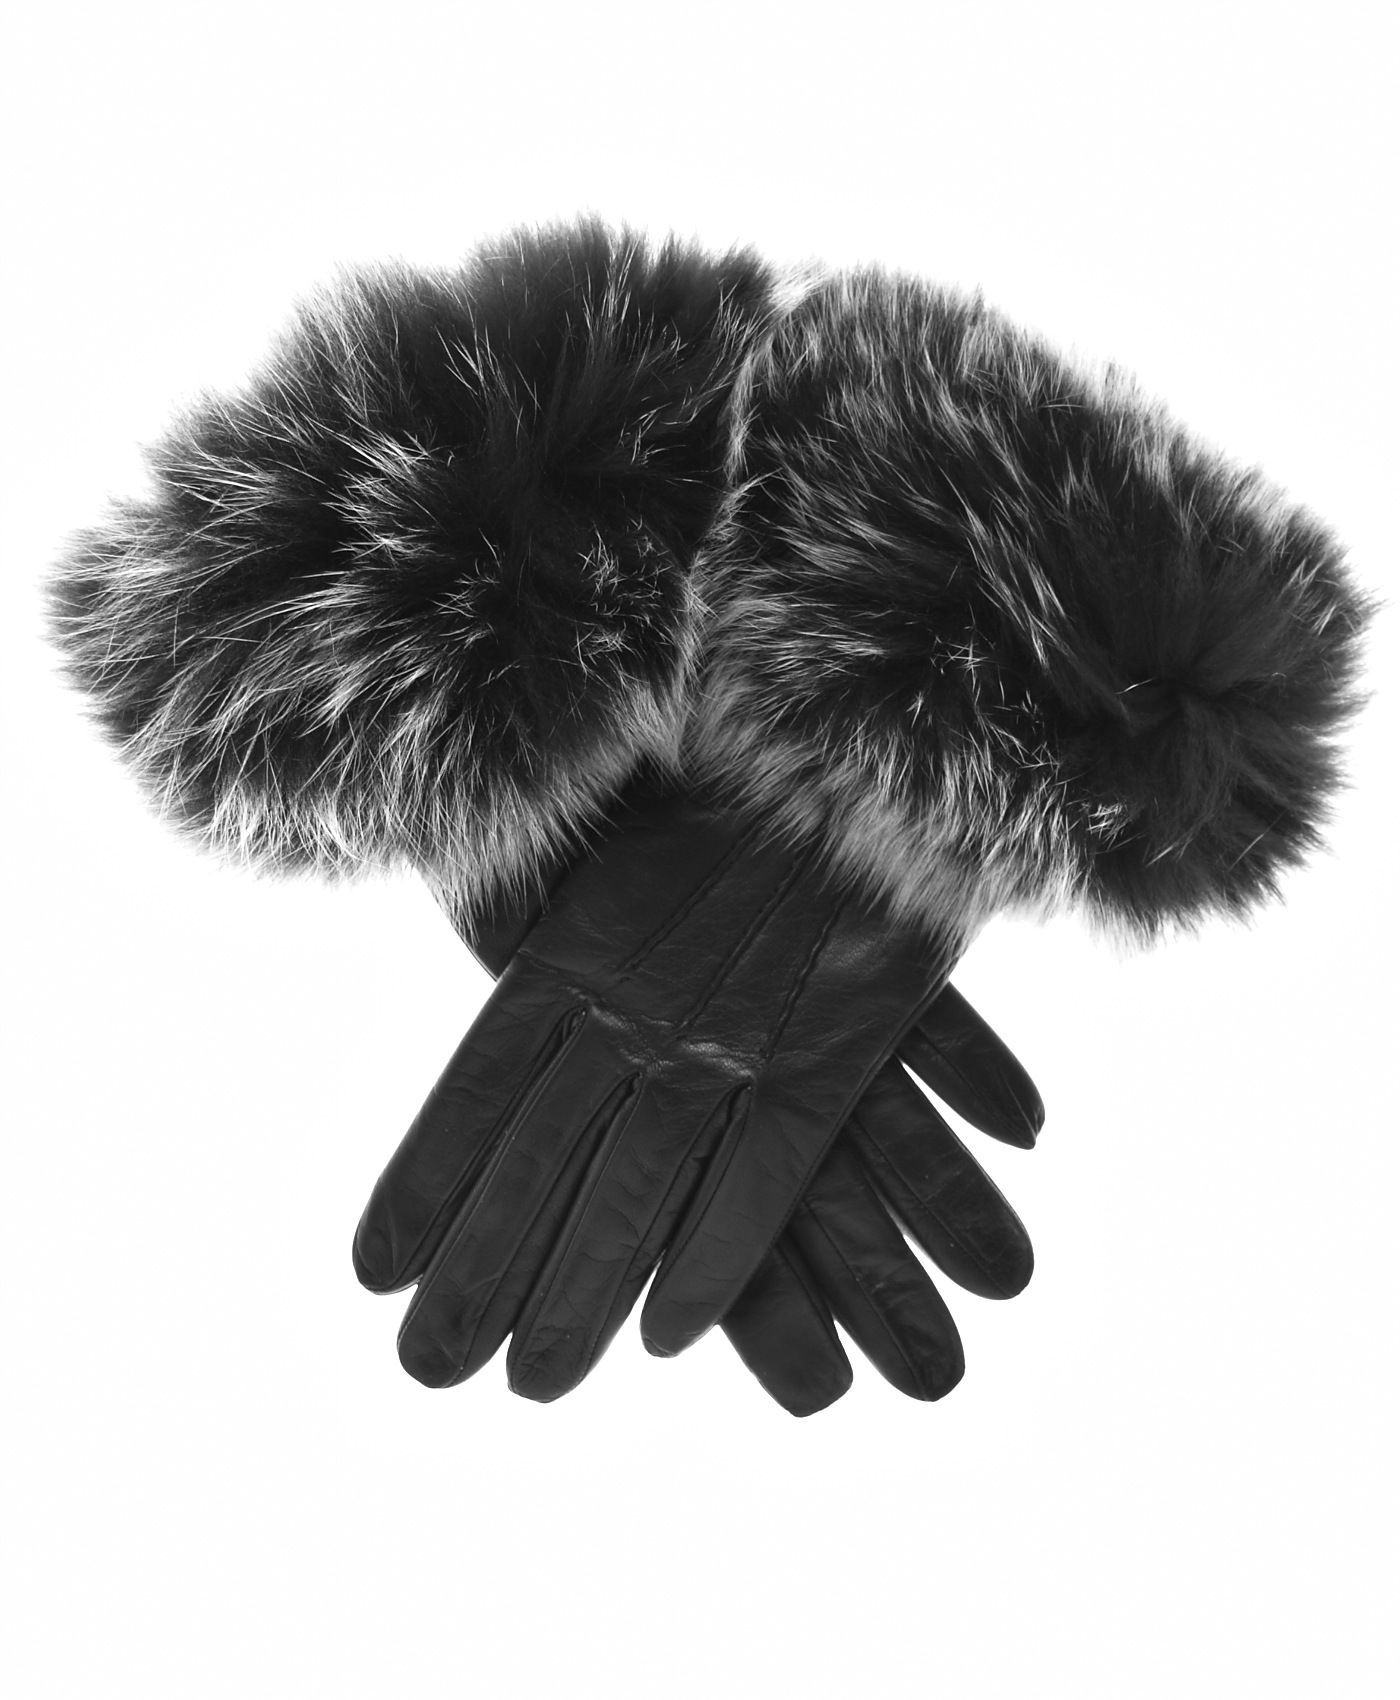 Womens lined leather gloves - Women S Italian Fox Fur Cuff Cashmere Lined Leather Gloves